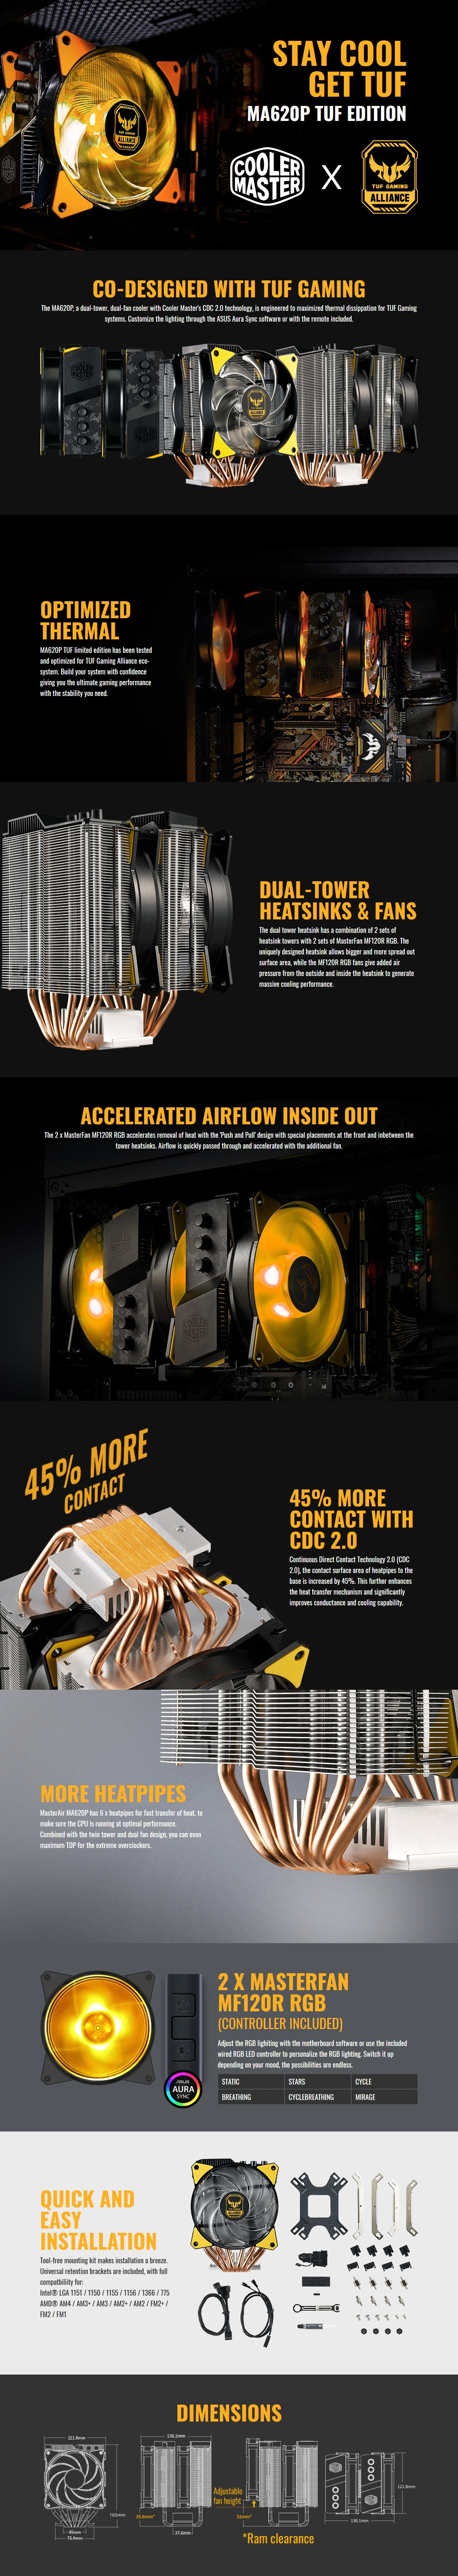 Cooler Master Masterair Ma620p Tuf Gaming Edition Map D6pn Afnpc R1 Deep Cool Z5 Features